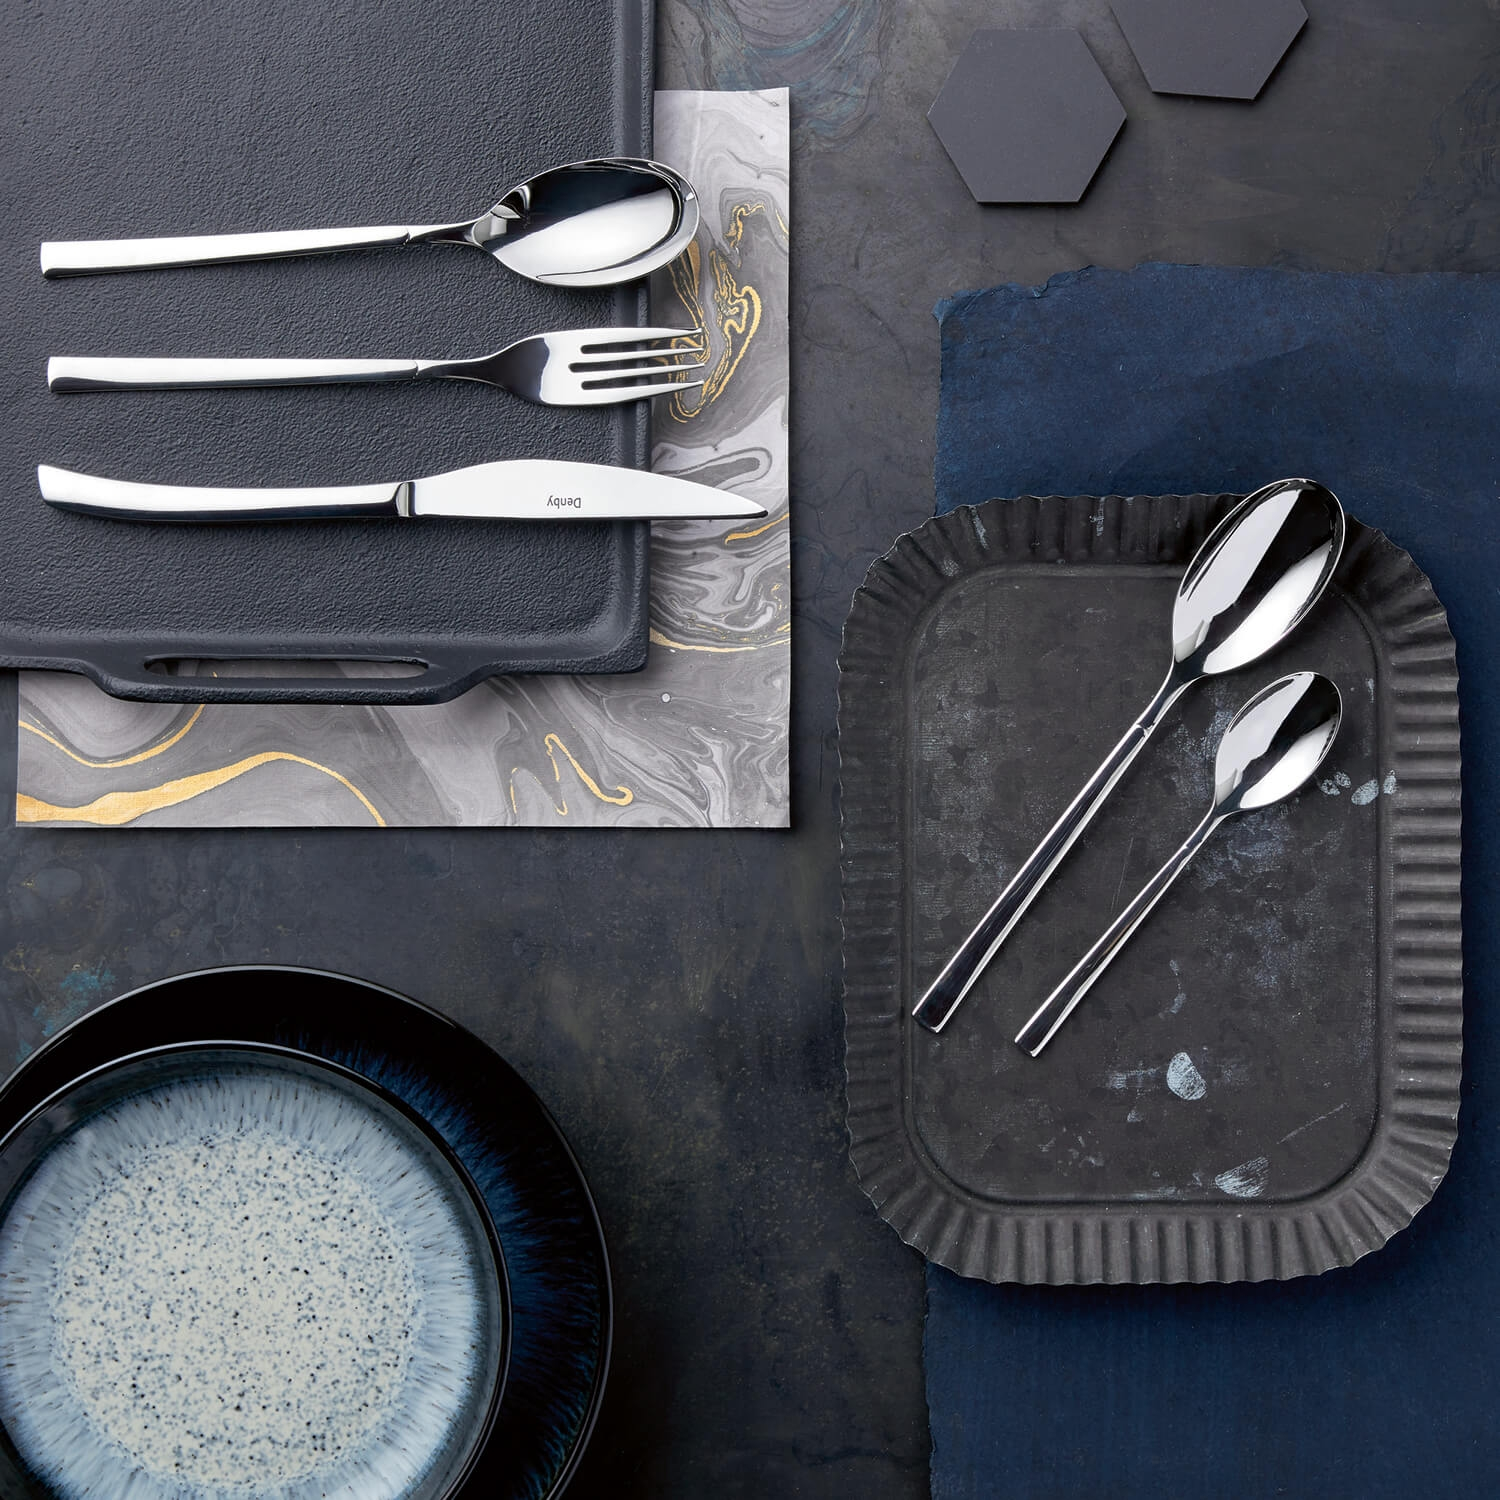 Image of Denby Spice 16 Piece Cutlery Set, Stainless Steel